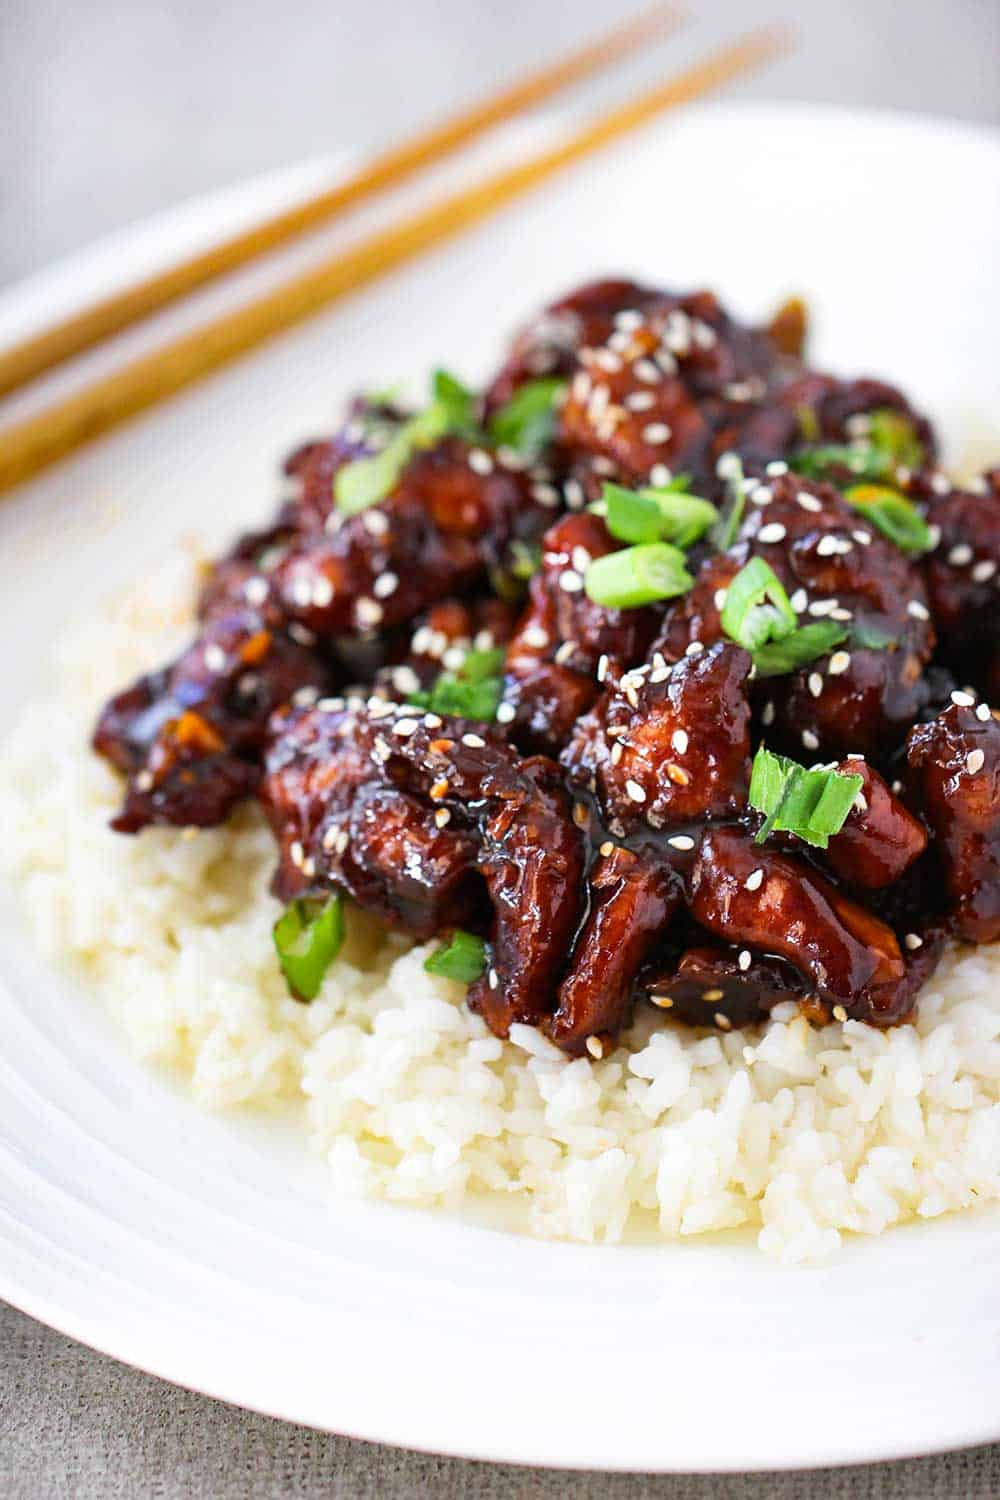 A white plate of General Tso's Chicken on a bed of white rice with a pair of chop sticks nearby.